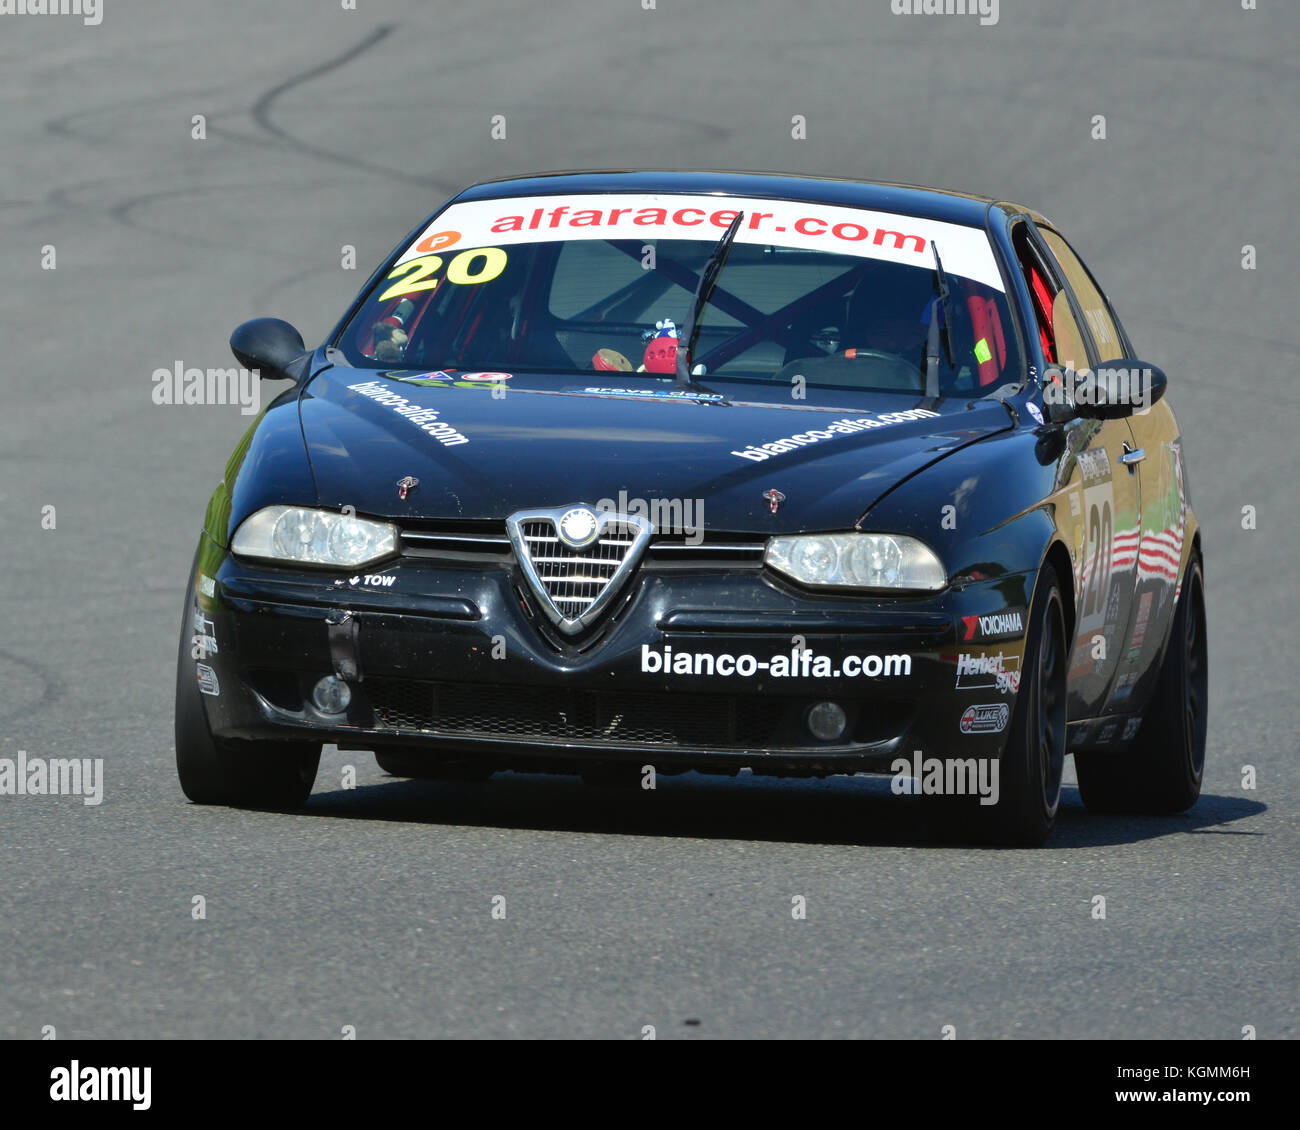 alfa romeo italia stock photos alfa romeo italia stock images alamy. Black Bedroom Furniture Sets. Home Design Ideas